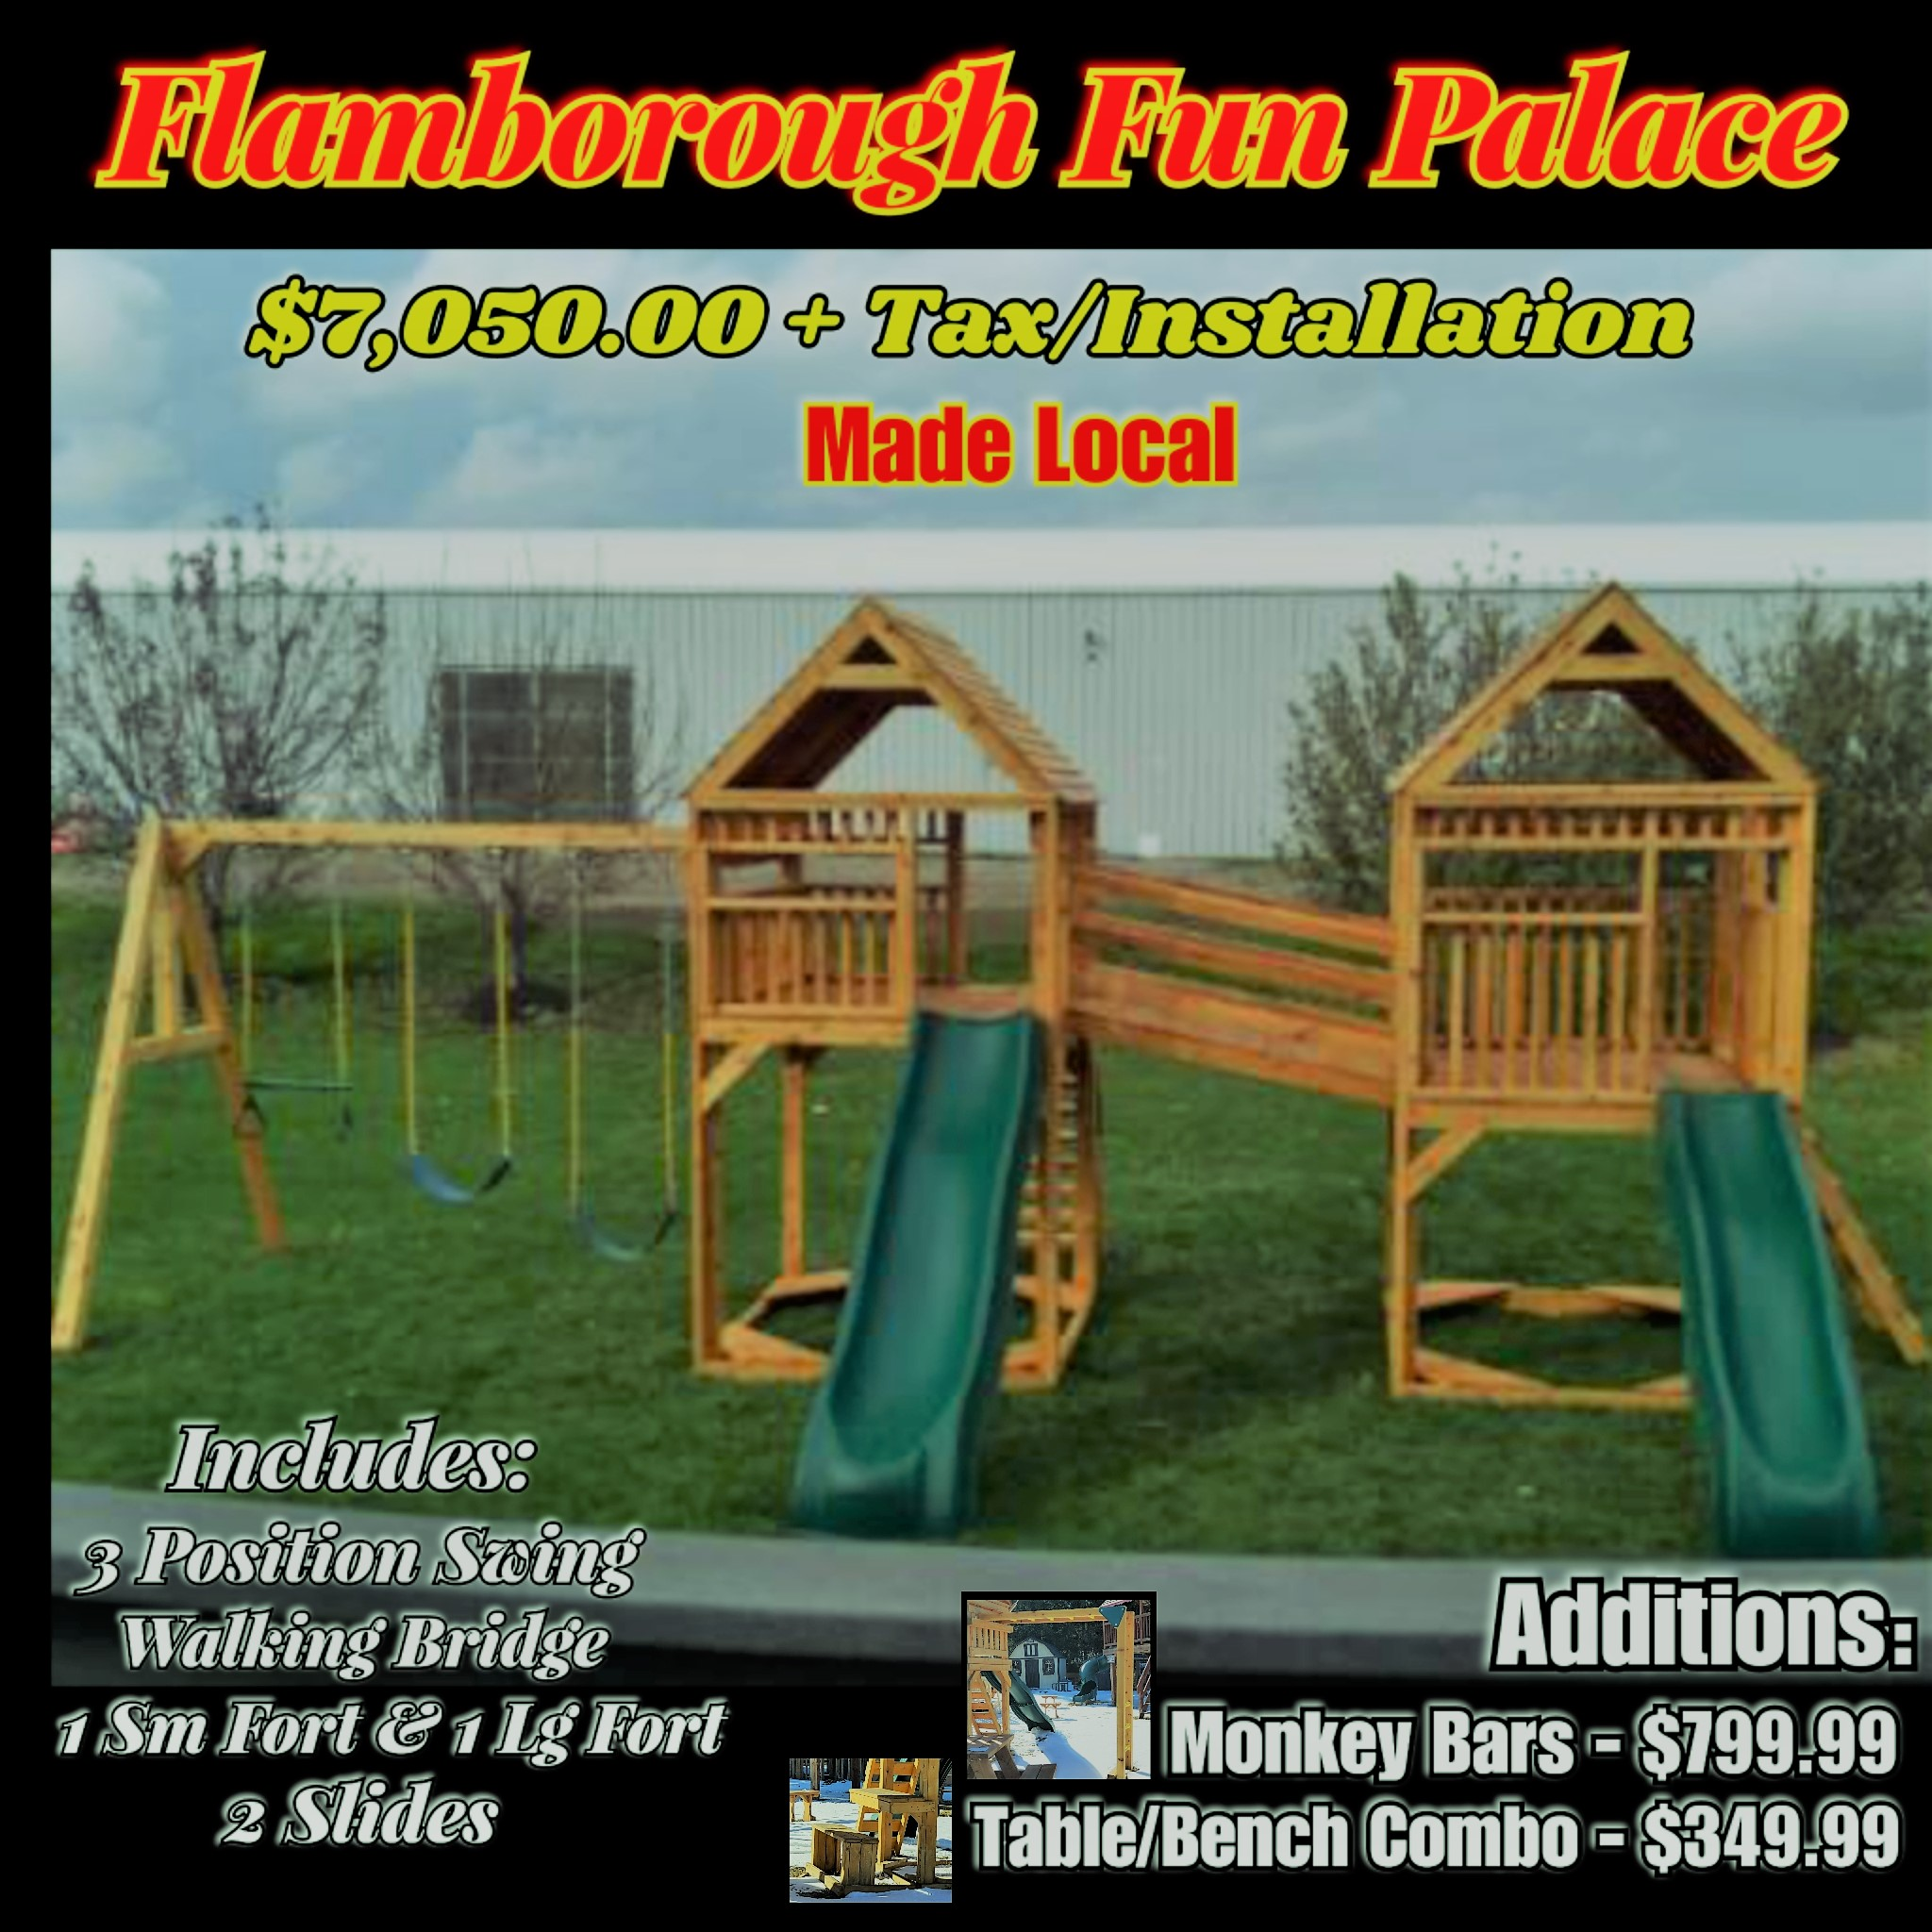 Flamborough Fun Palace